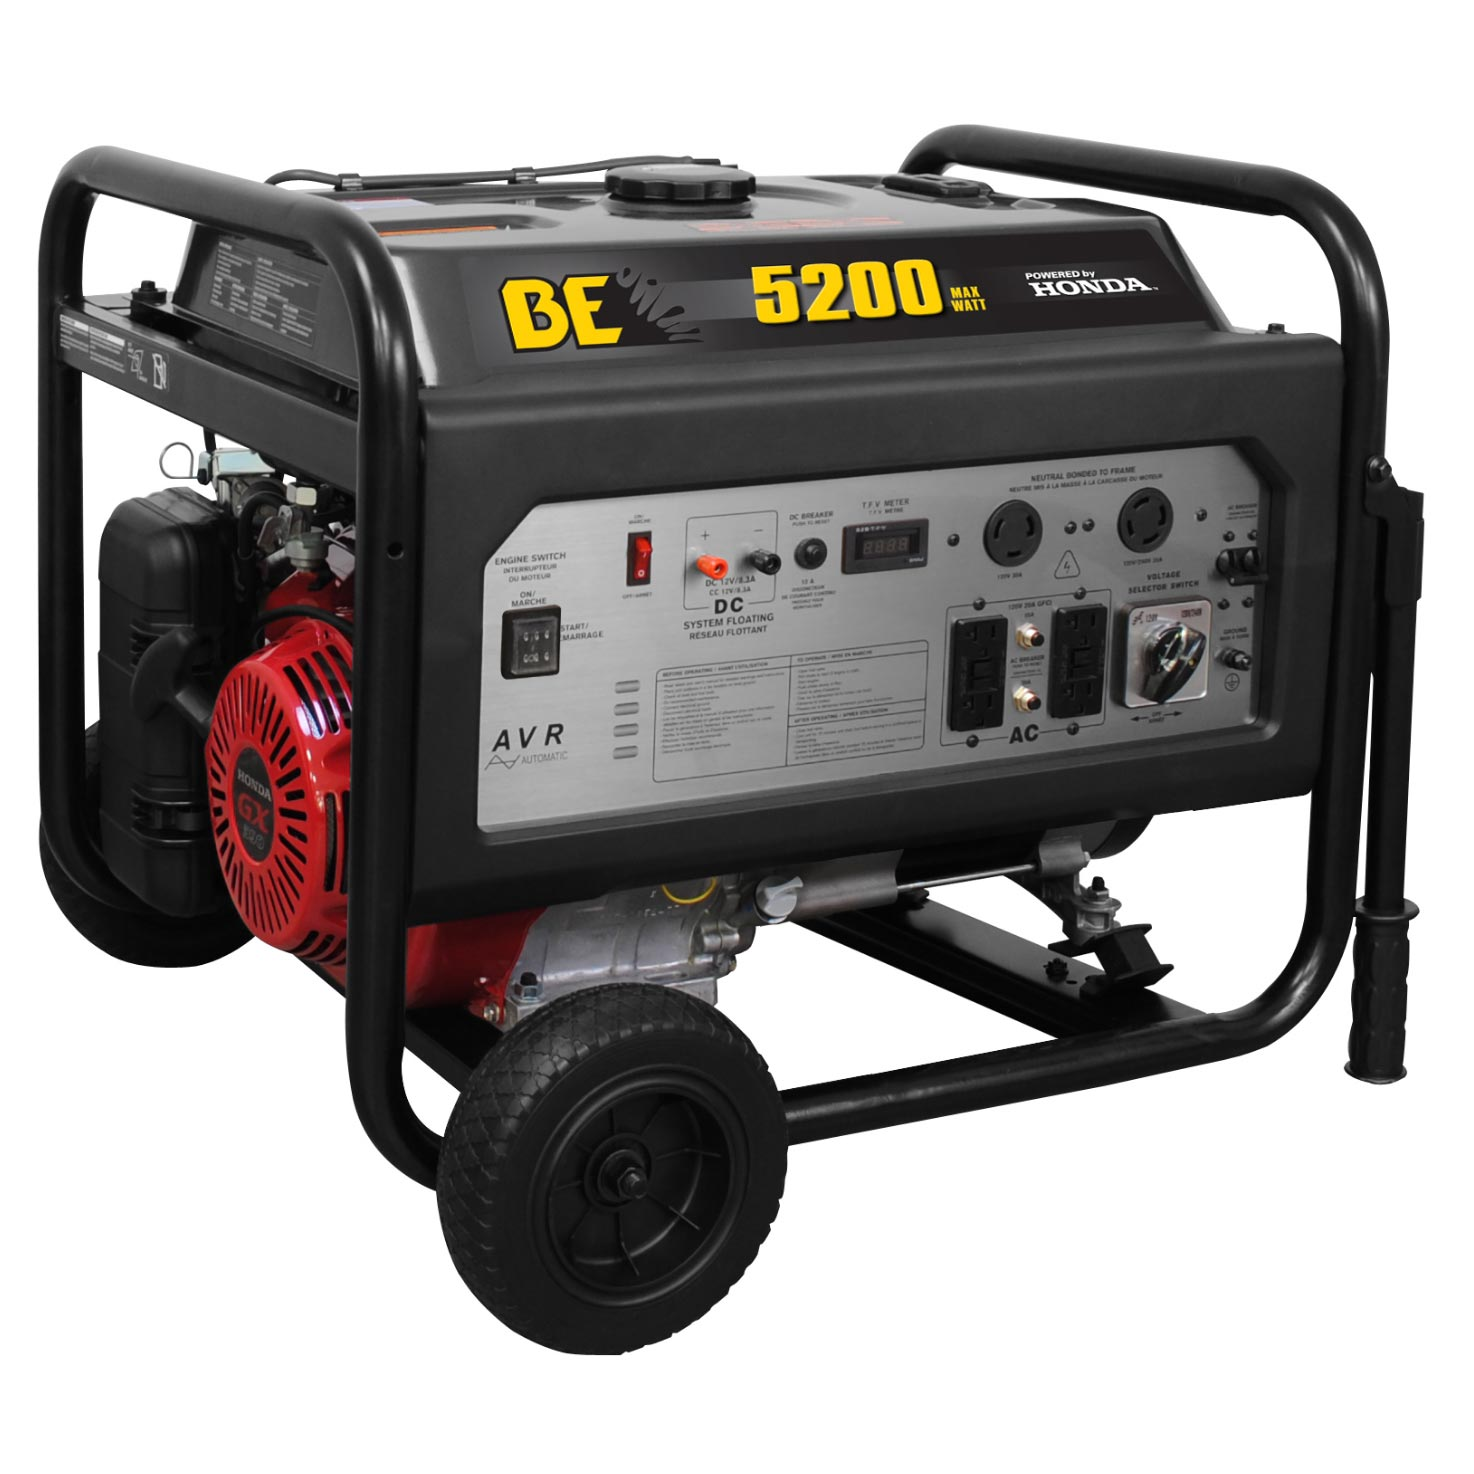 BE Pressure BE5200HR Honda 5200 Watt Electrical Generator